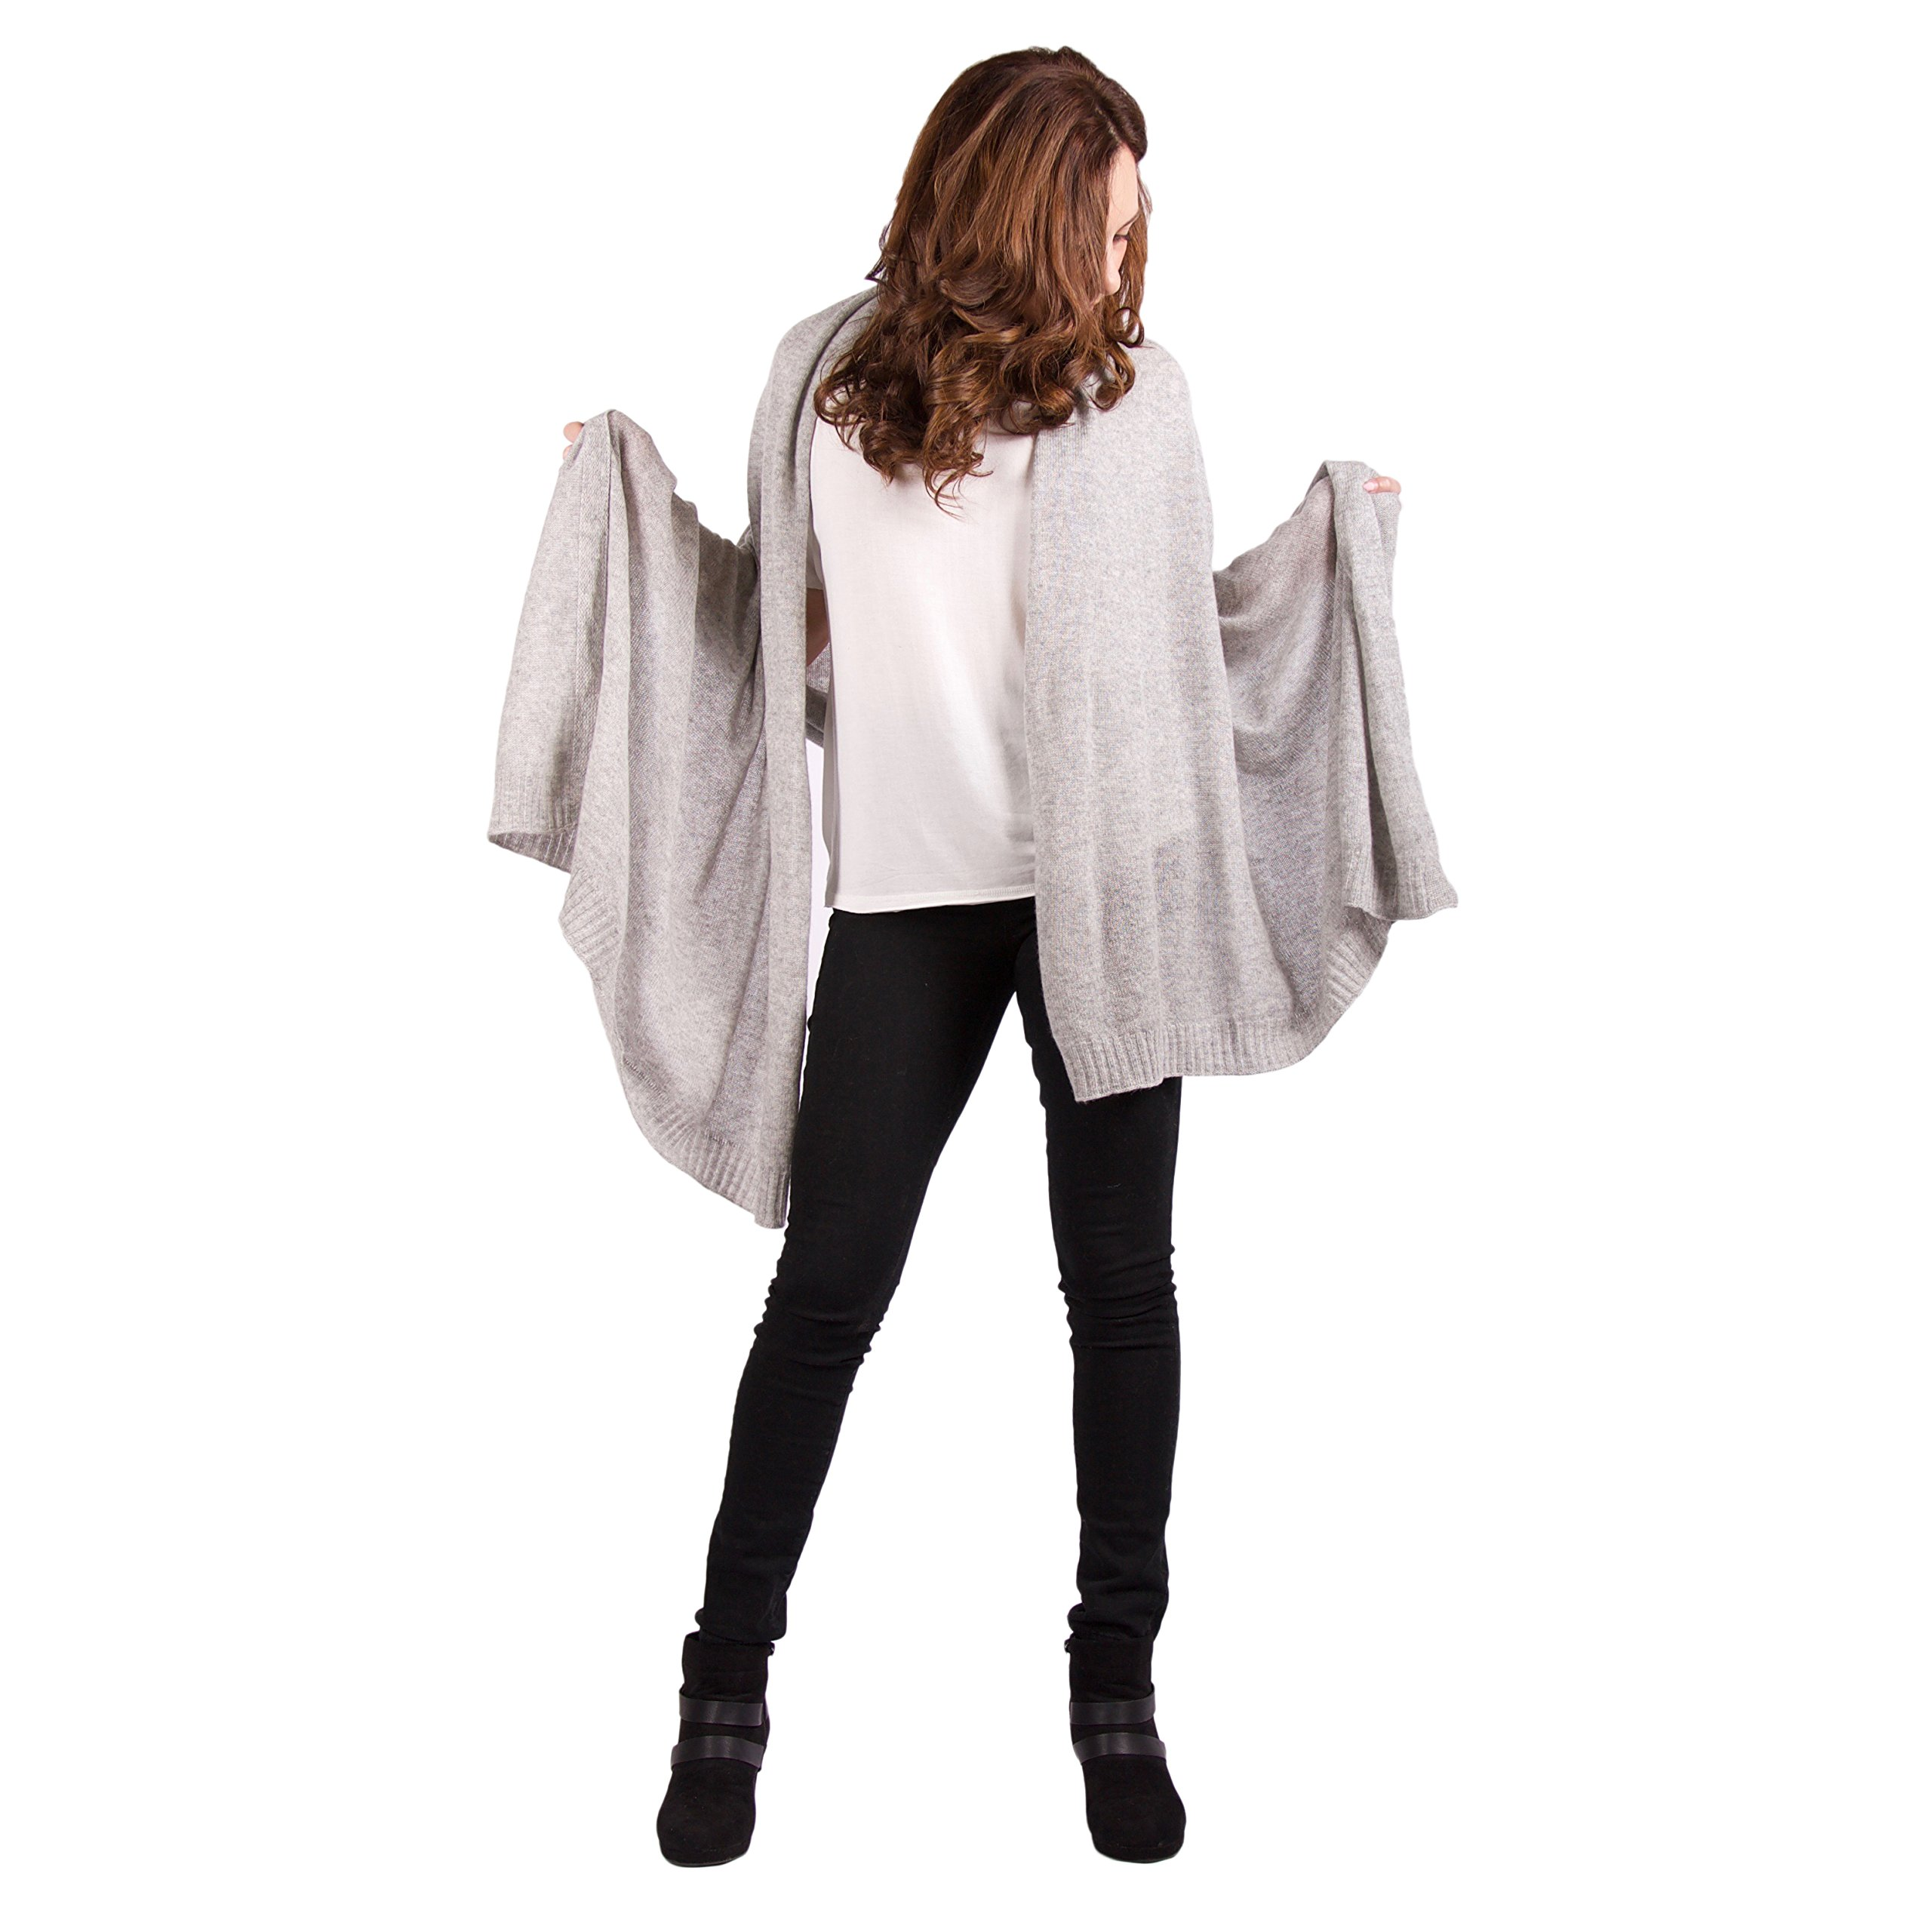 100% Cashmere Wrap ''Iman'' Classic Luxury Light Gray 72''x36'' Wrap by Lucky Bird Cashmere